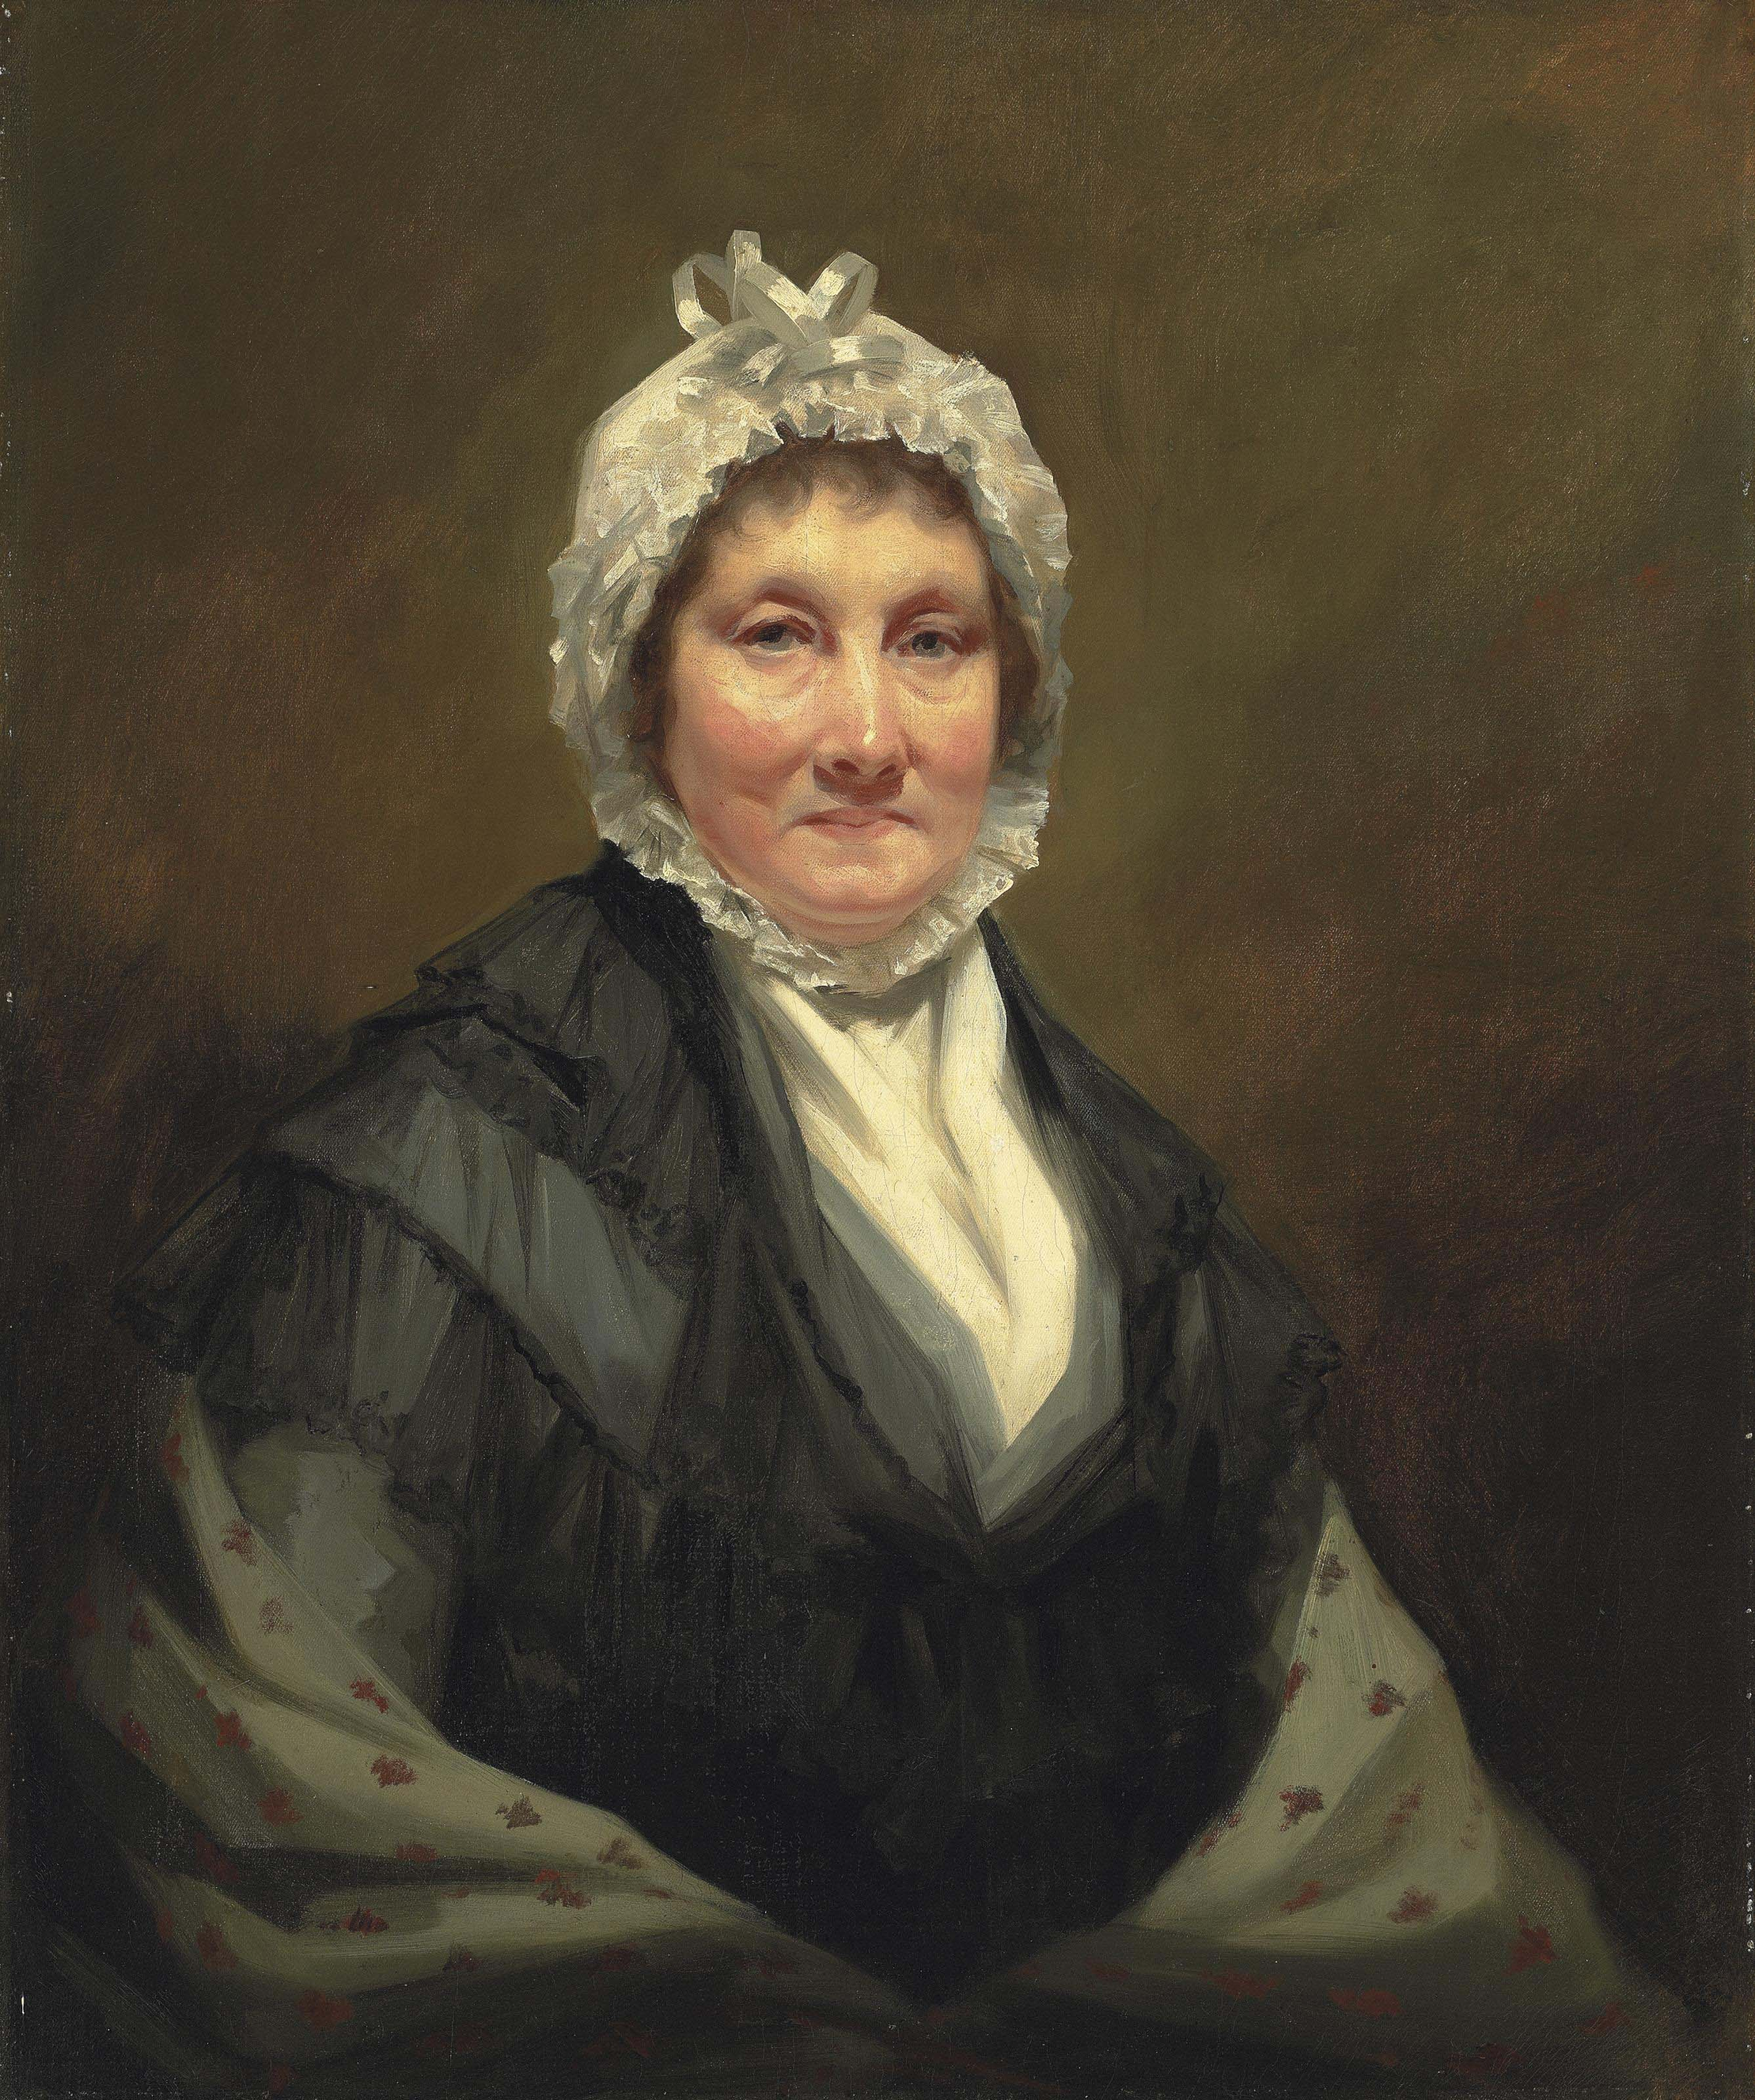 Portrait of the Hon. Mrs. King, of Dunira, half-length, in a black dress and a grey shawl, with a white bonnet